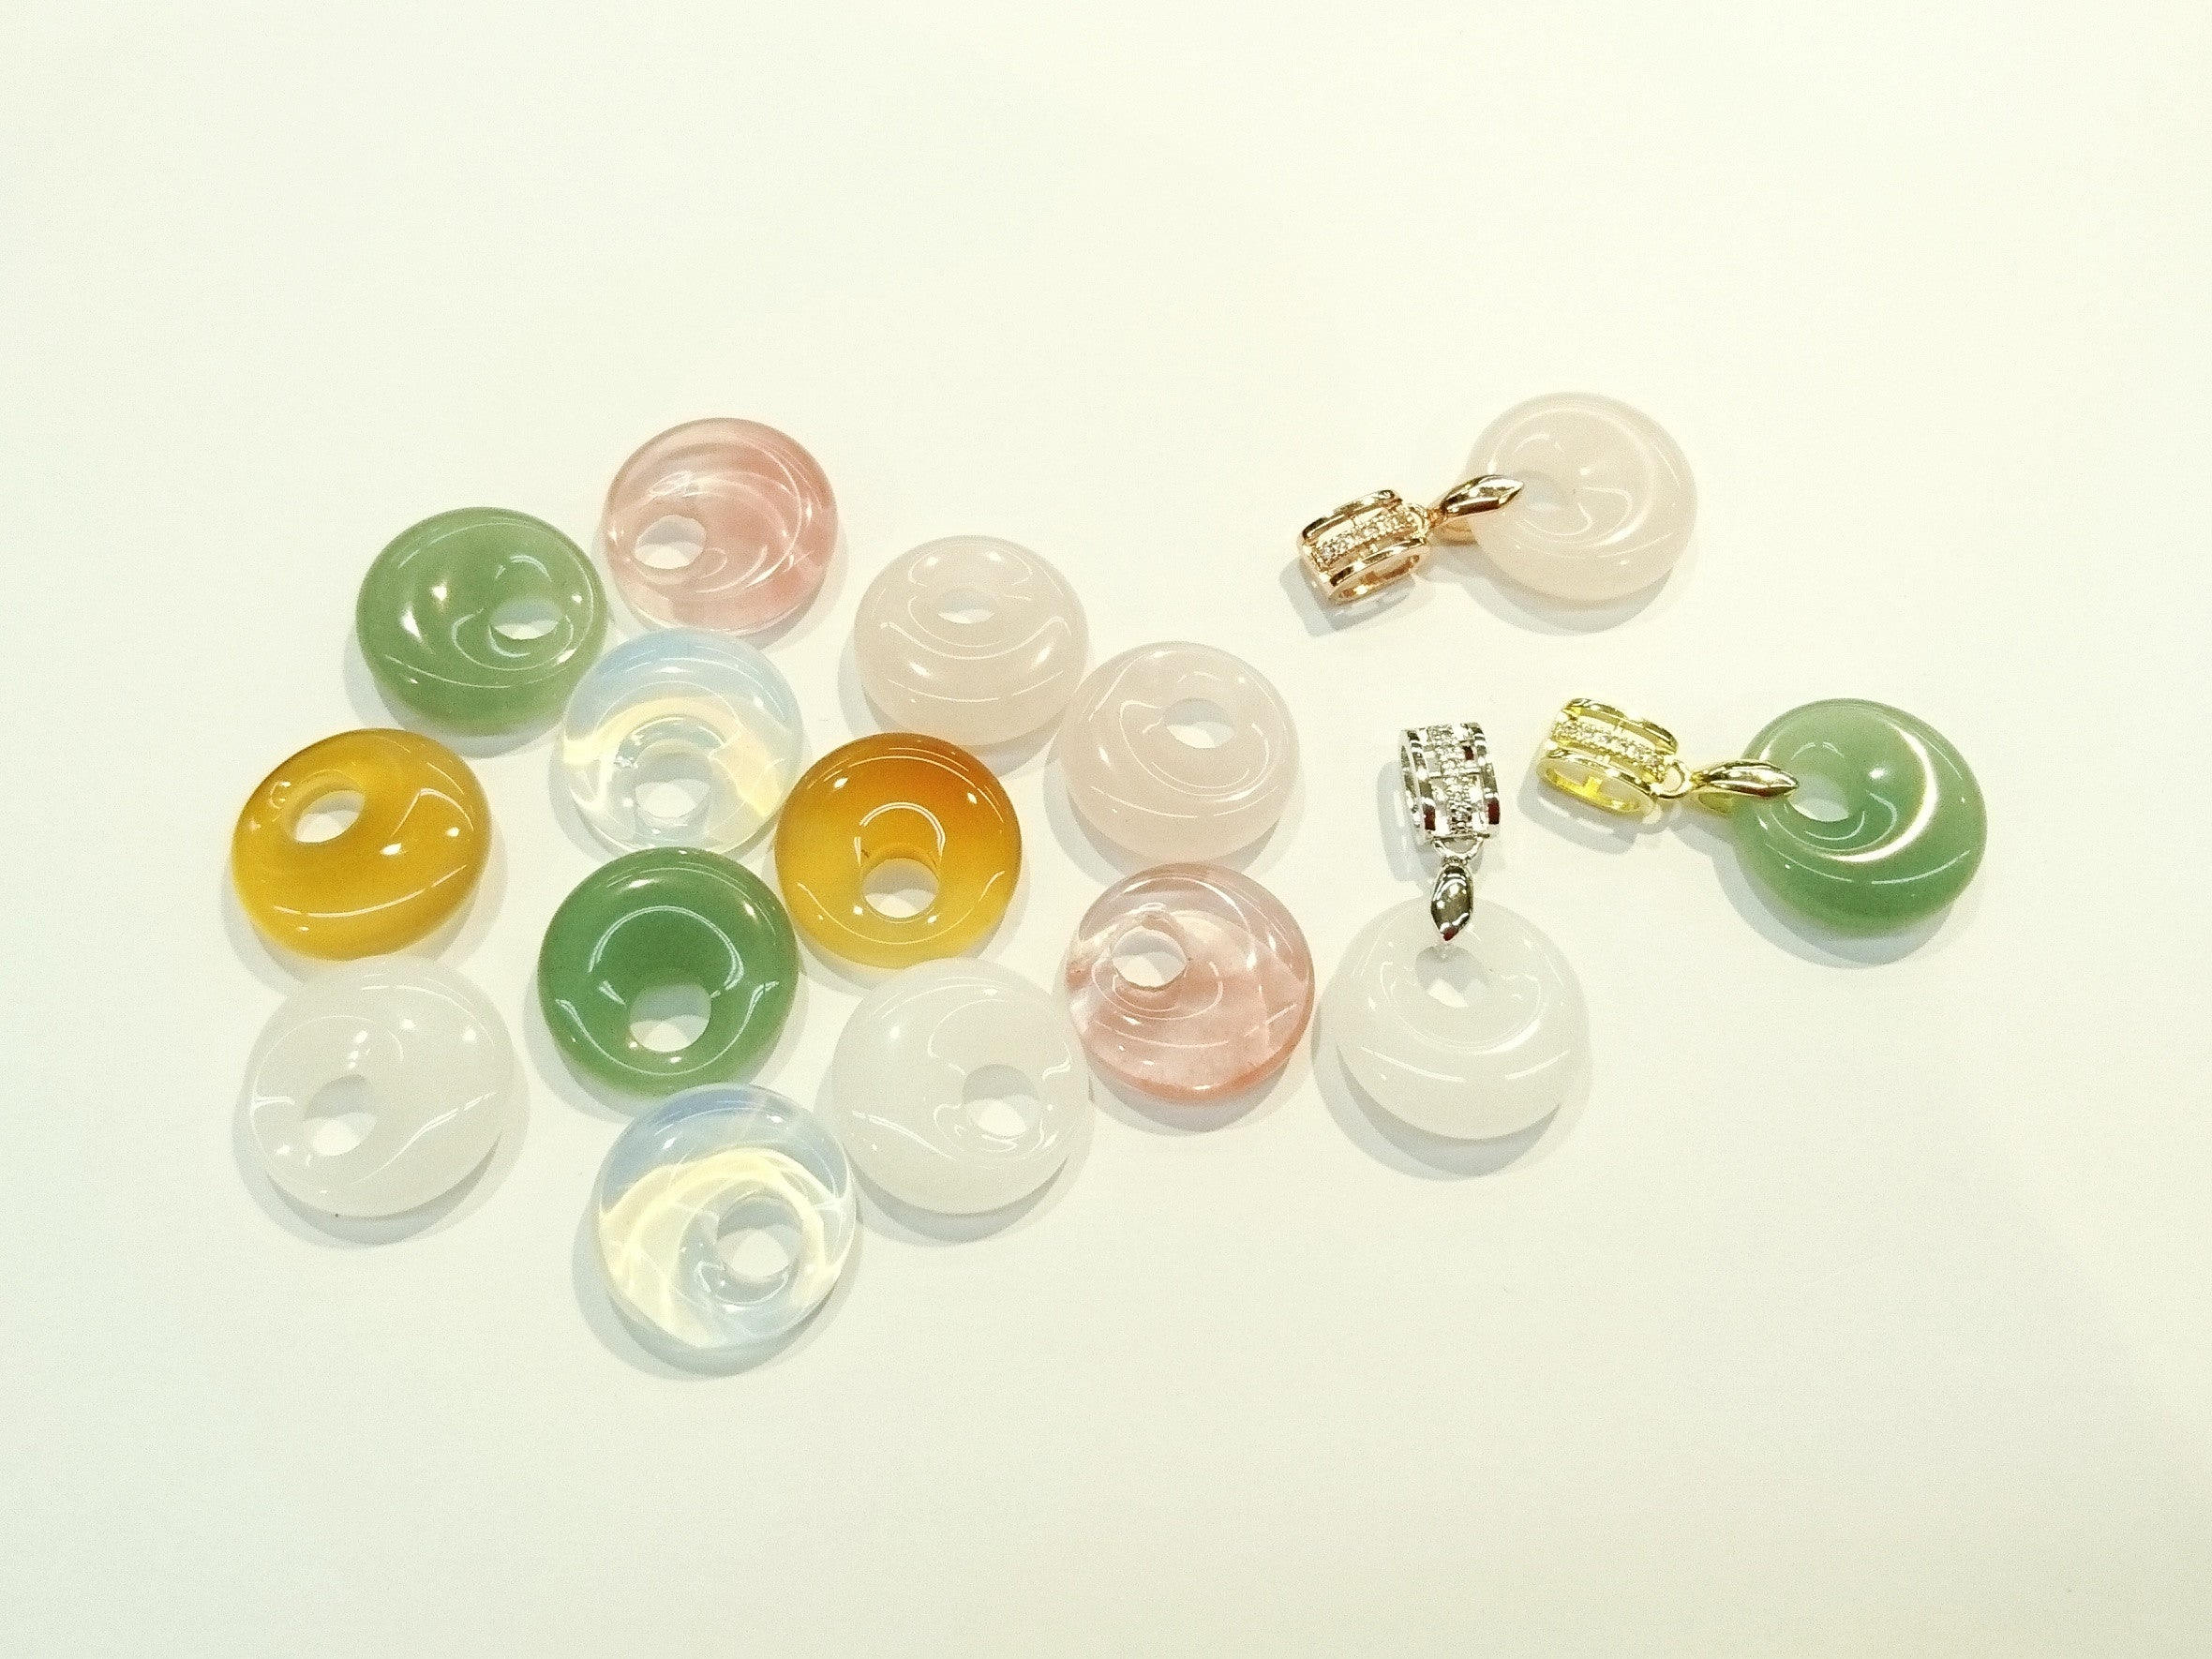 Chinese Lucky Charms - Round shape pendants